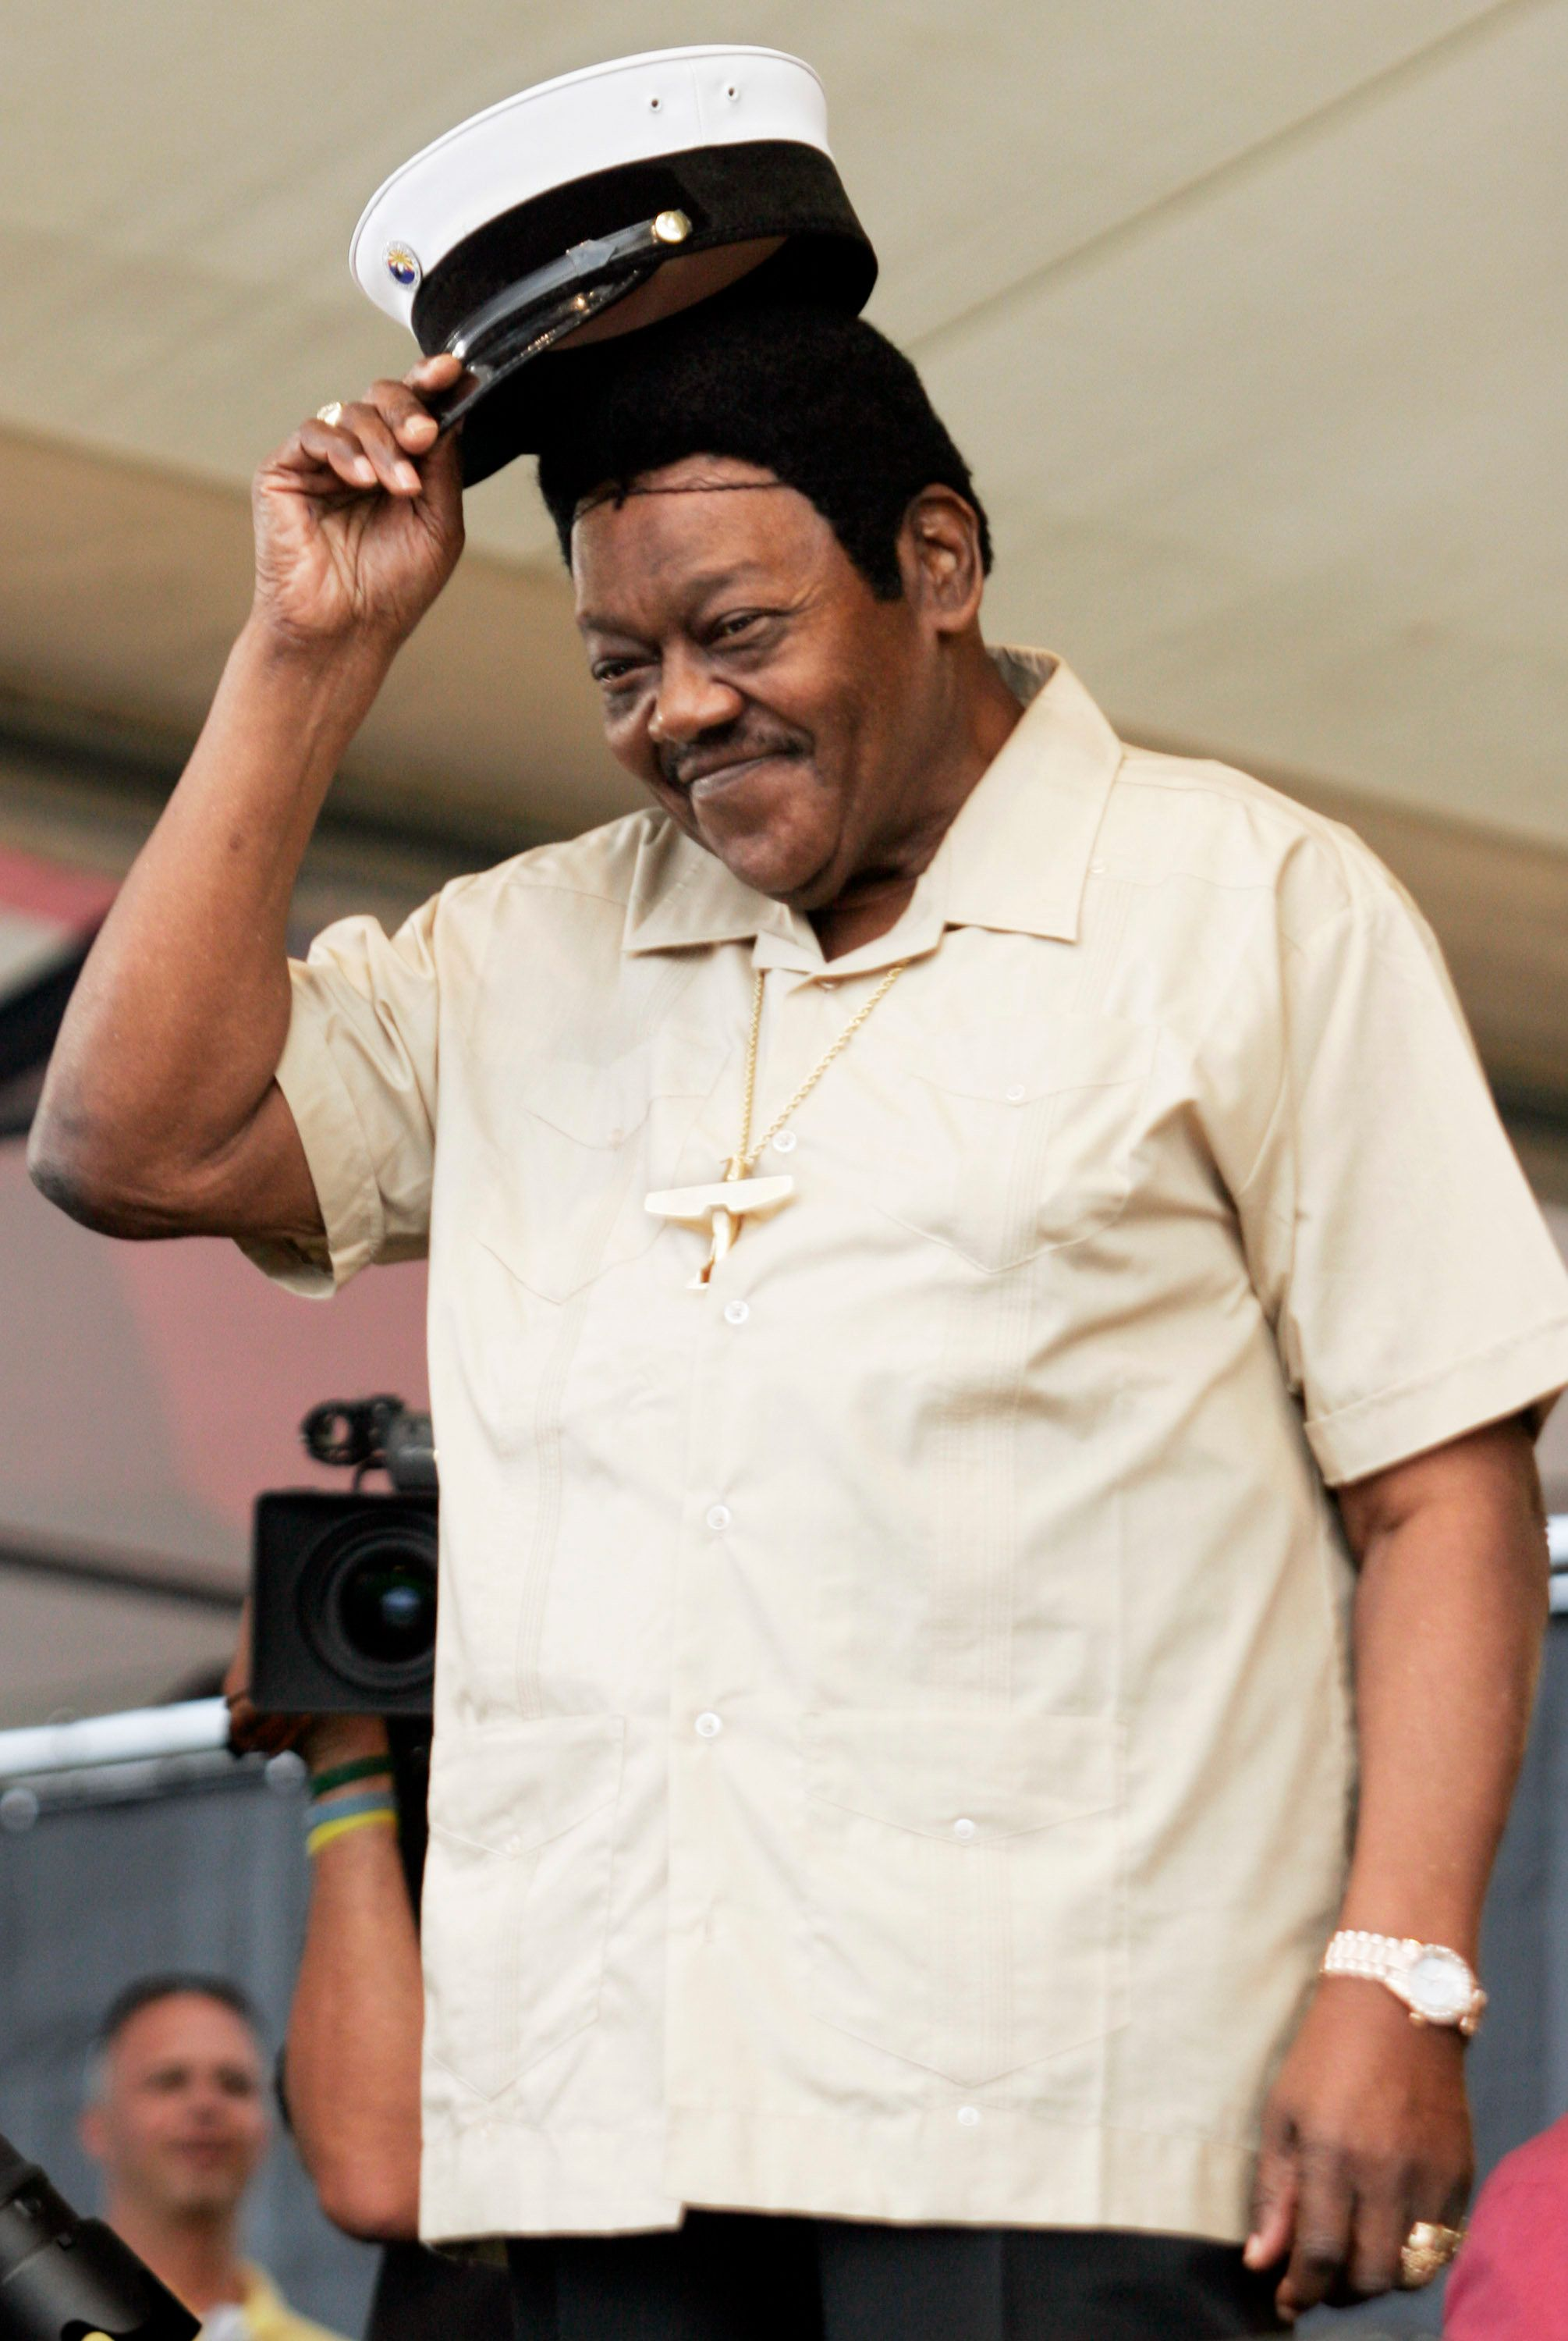 U.S. musician Fats Domino tips his hat to the crowd during the New Orleans Jazz and Heritage Festival in New Orleans May 7, 2006. Domino cancelled his performance at the festival due to medical problems. REUTERS/Lee Celano